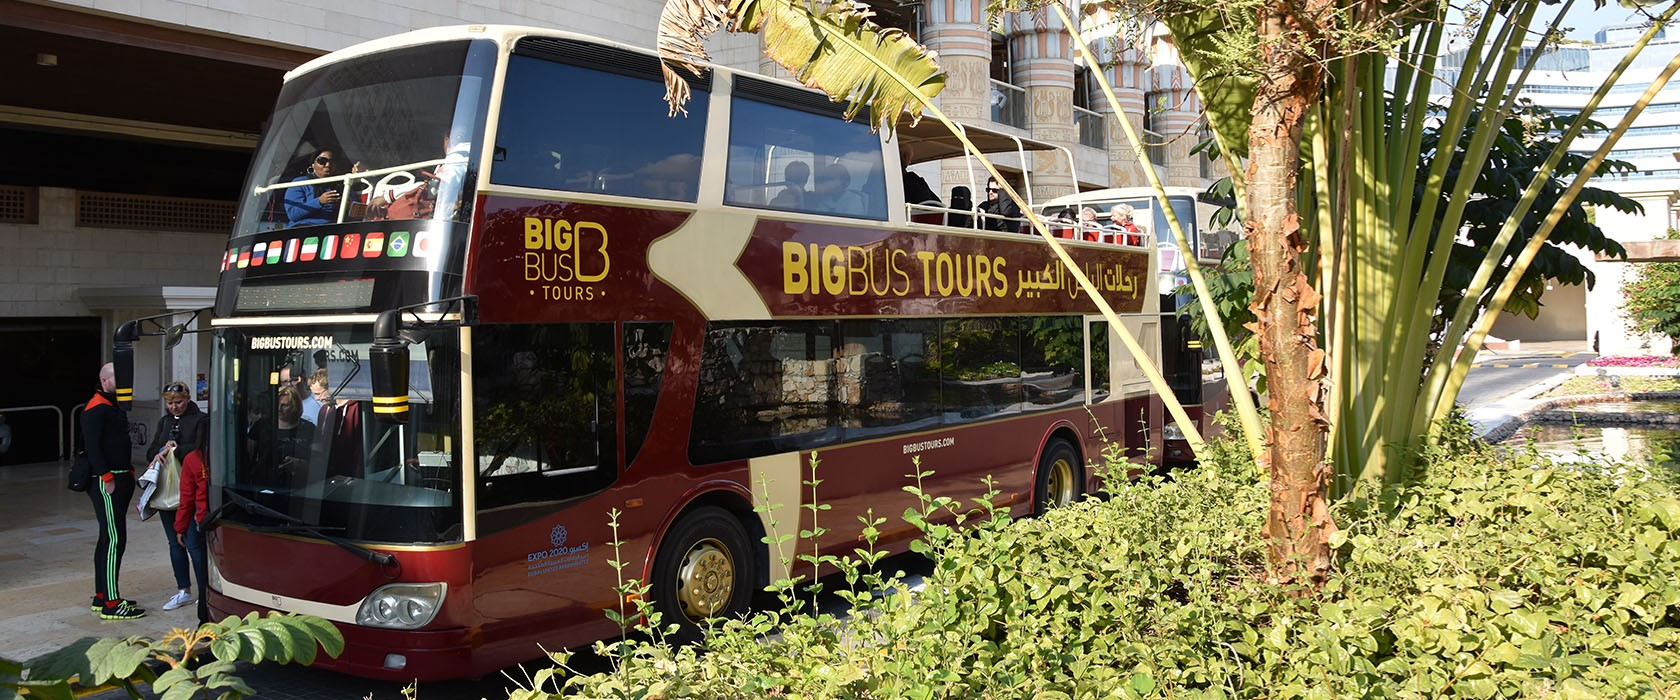 Dubai Big Bus Tours (Hop-on Hop-off Bus)